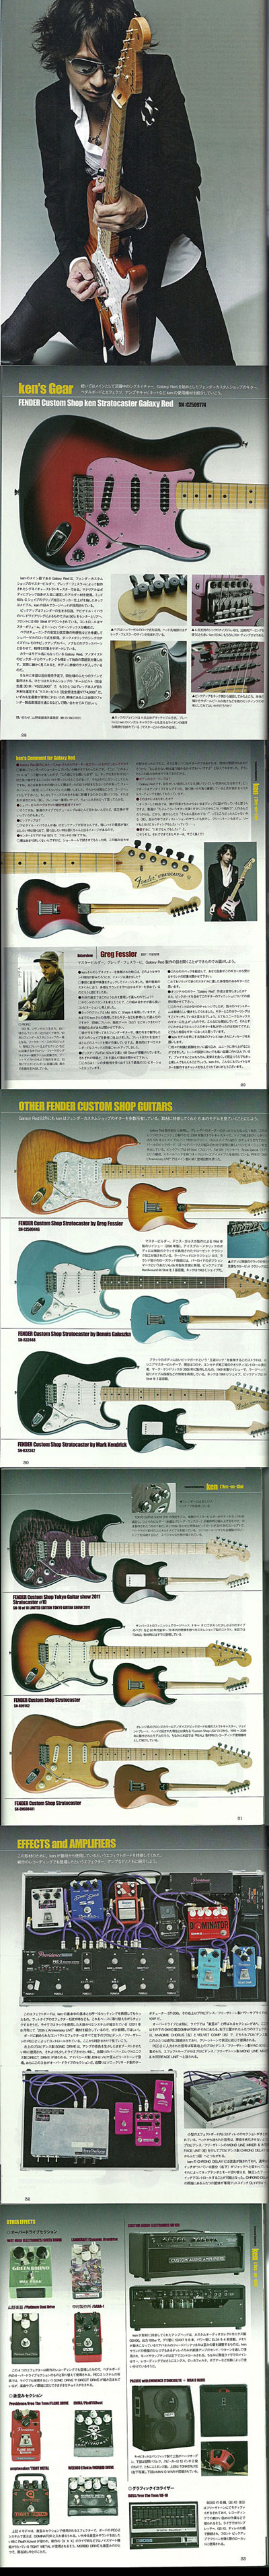 ken-guitar-magazine-2012MAR-02.jpg